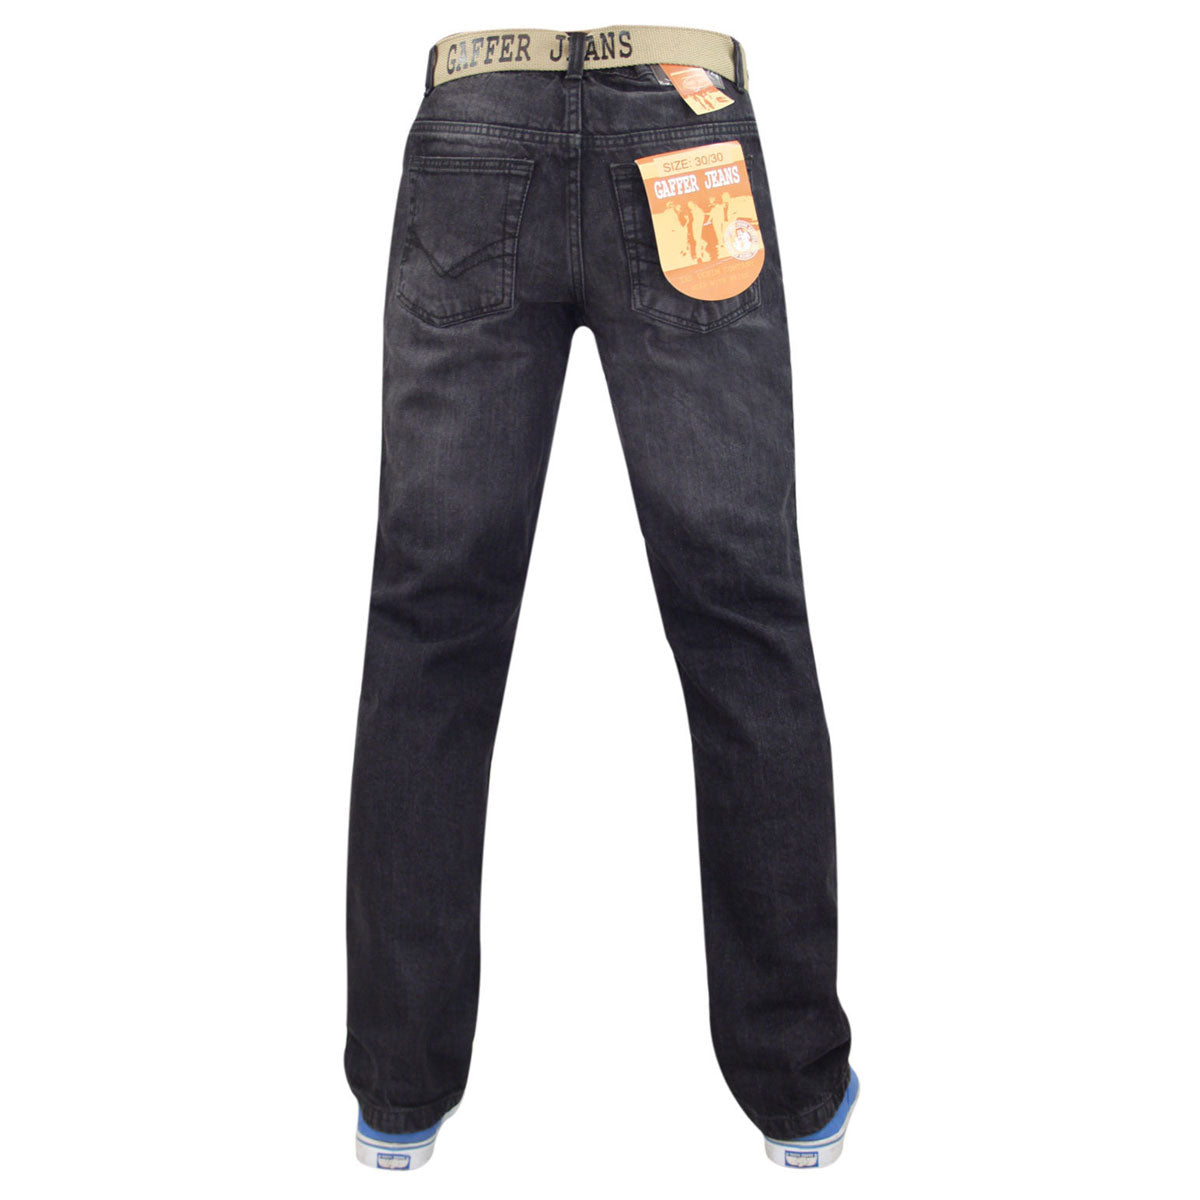 Gaffer Men Straight Leg Jeans Black